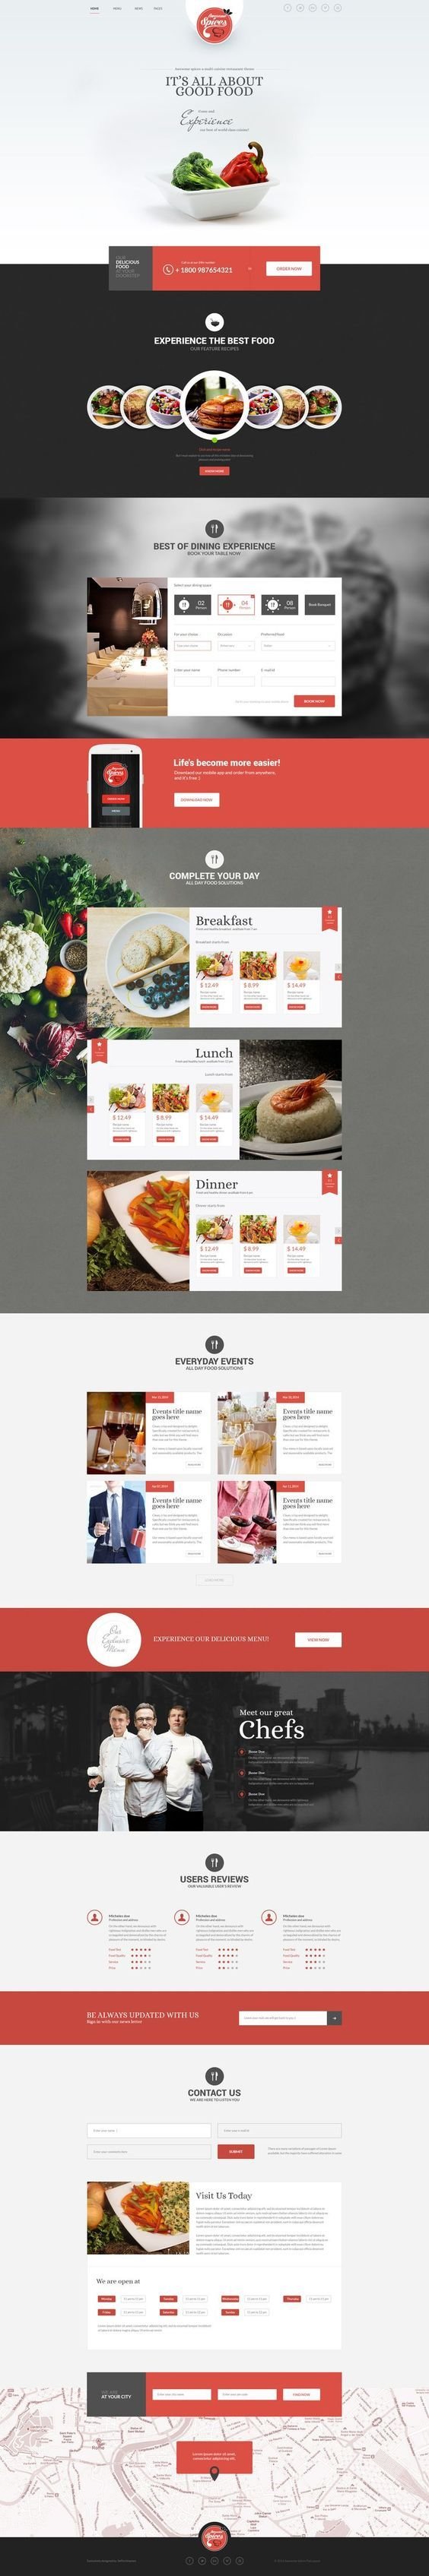 Web design trends - Awesome Spice-One Page Restaurant Theme #webdesign: